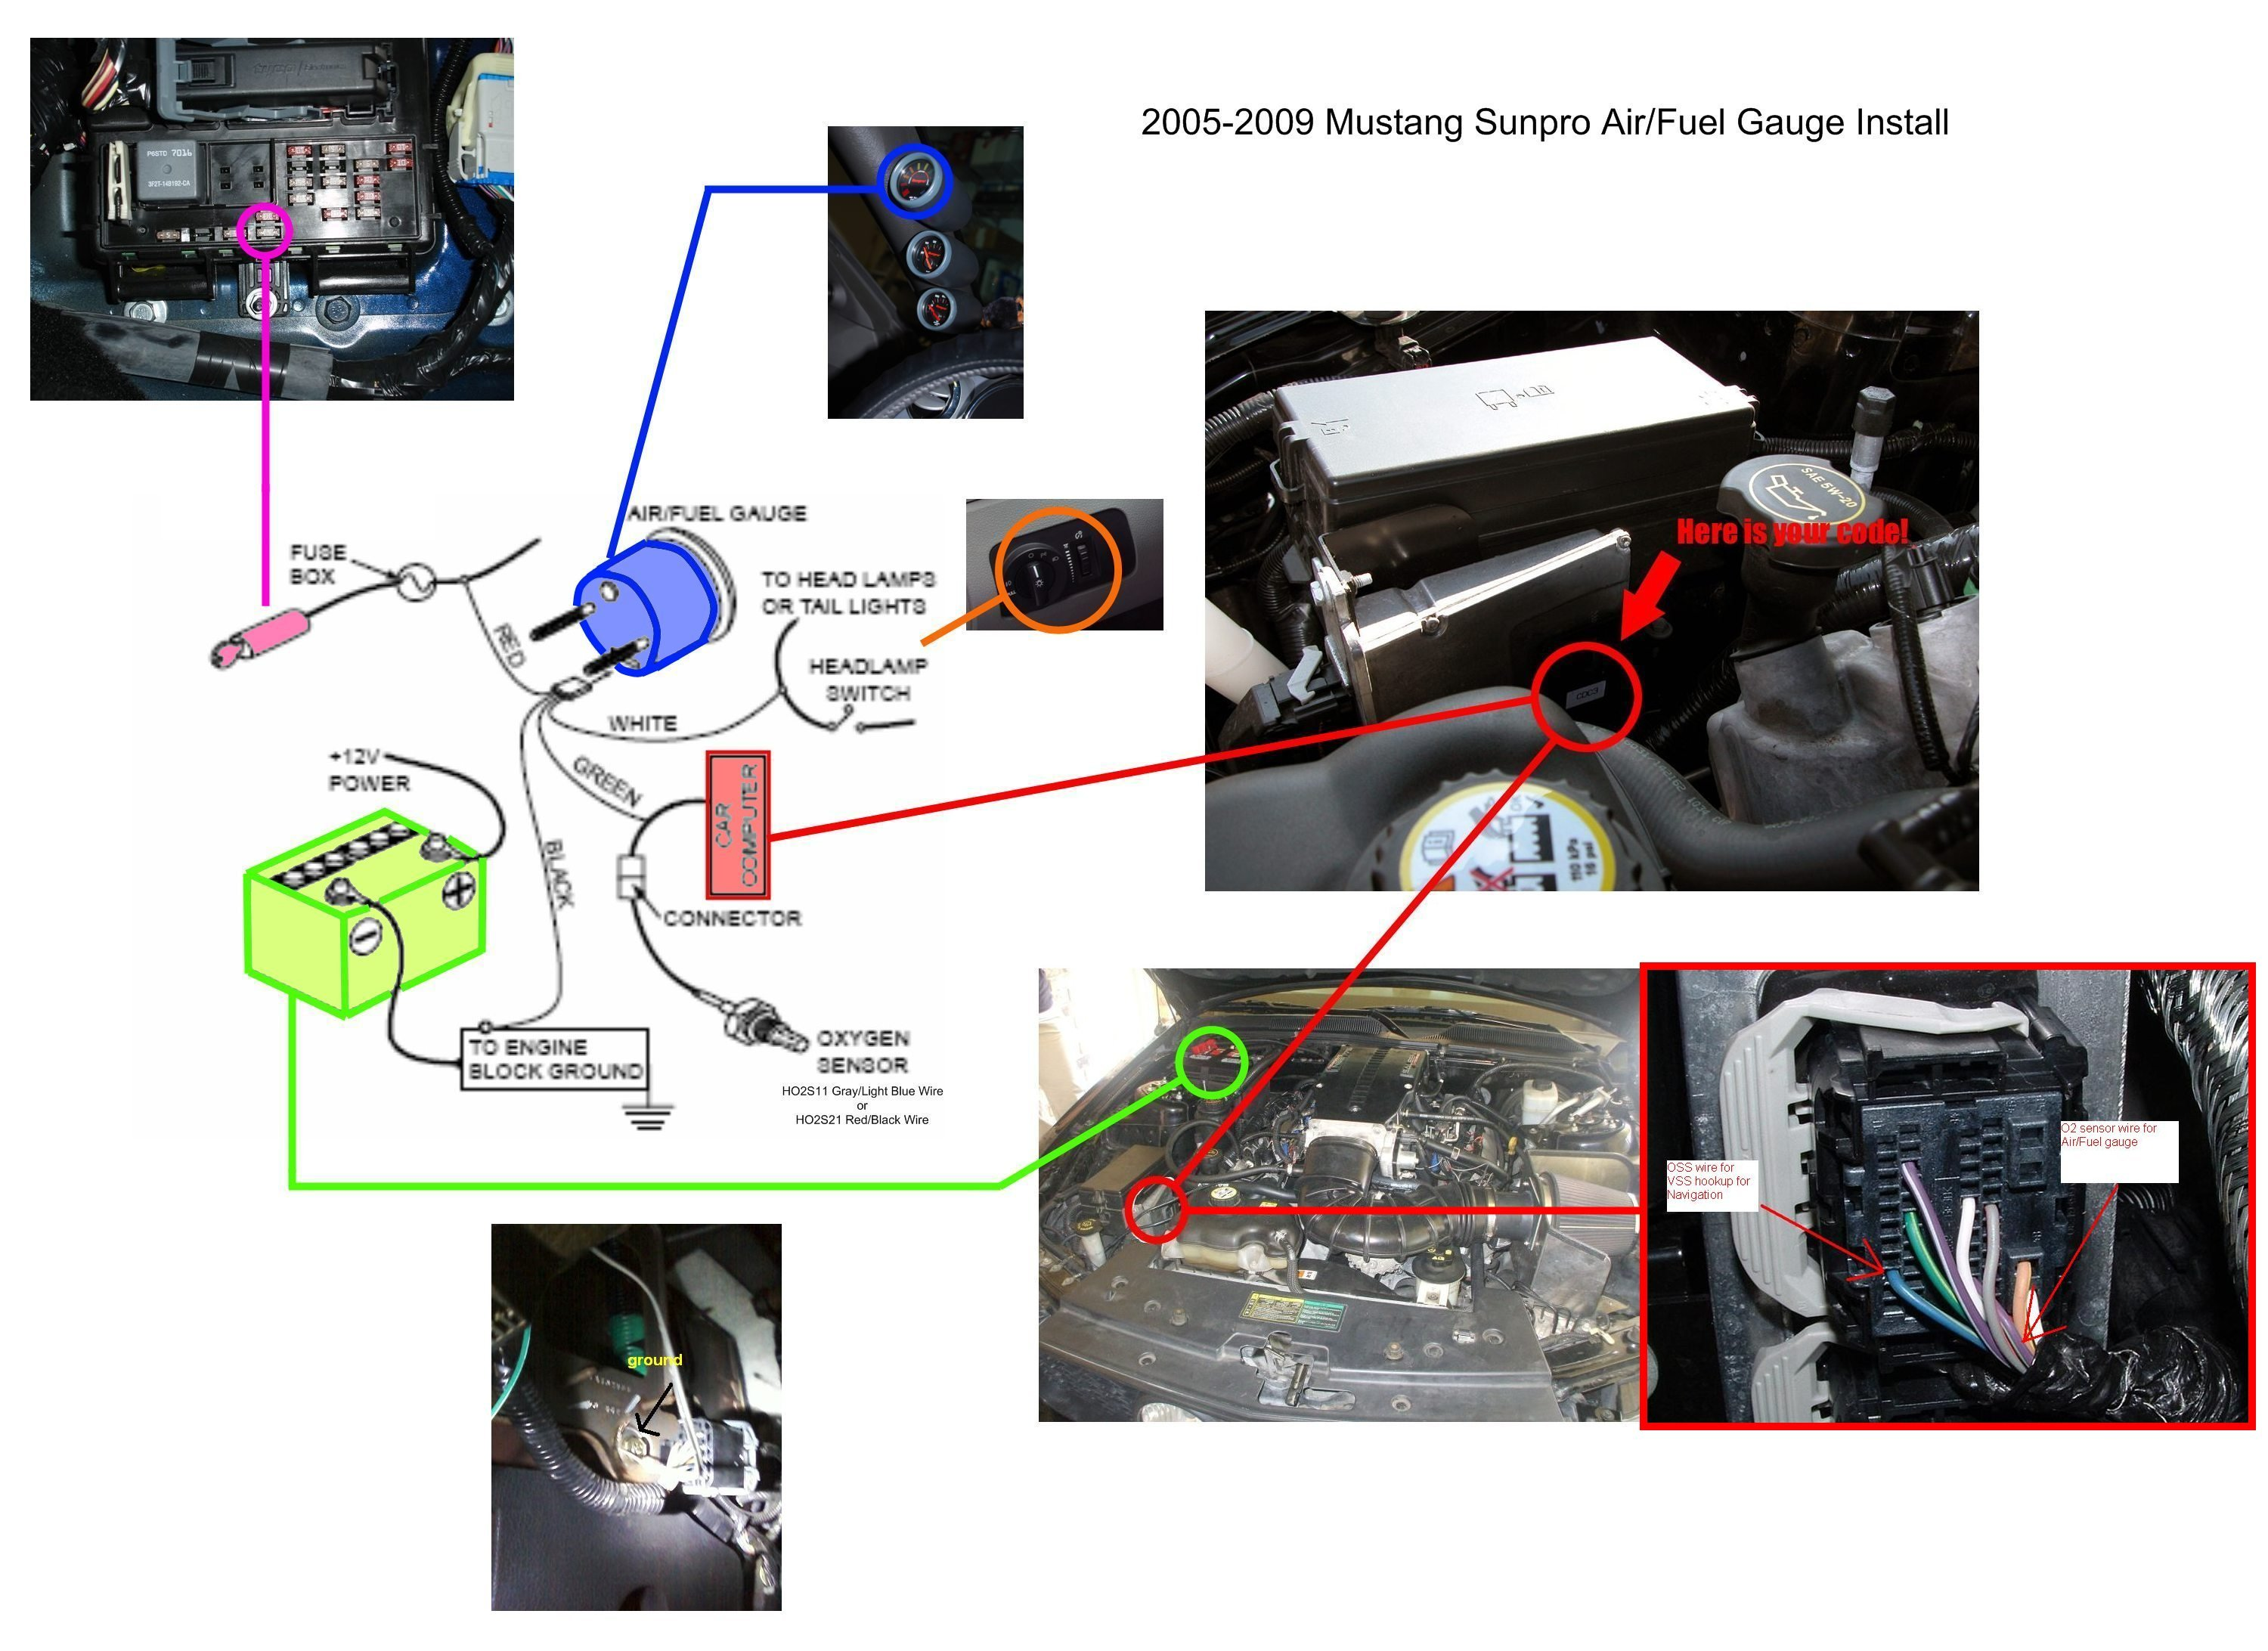 Auto Meter Air Fuel Gauge Wiring Diagram Library Fiber Optic Free Download Schematic Autometer Sport P And Page1 Showy Physical Click Image For Larger Version Name Views 11053